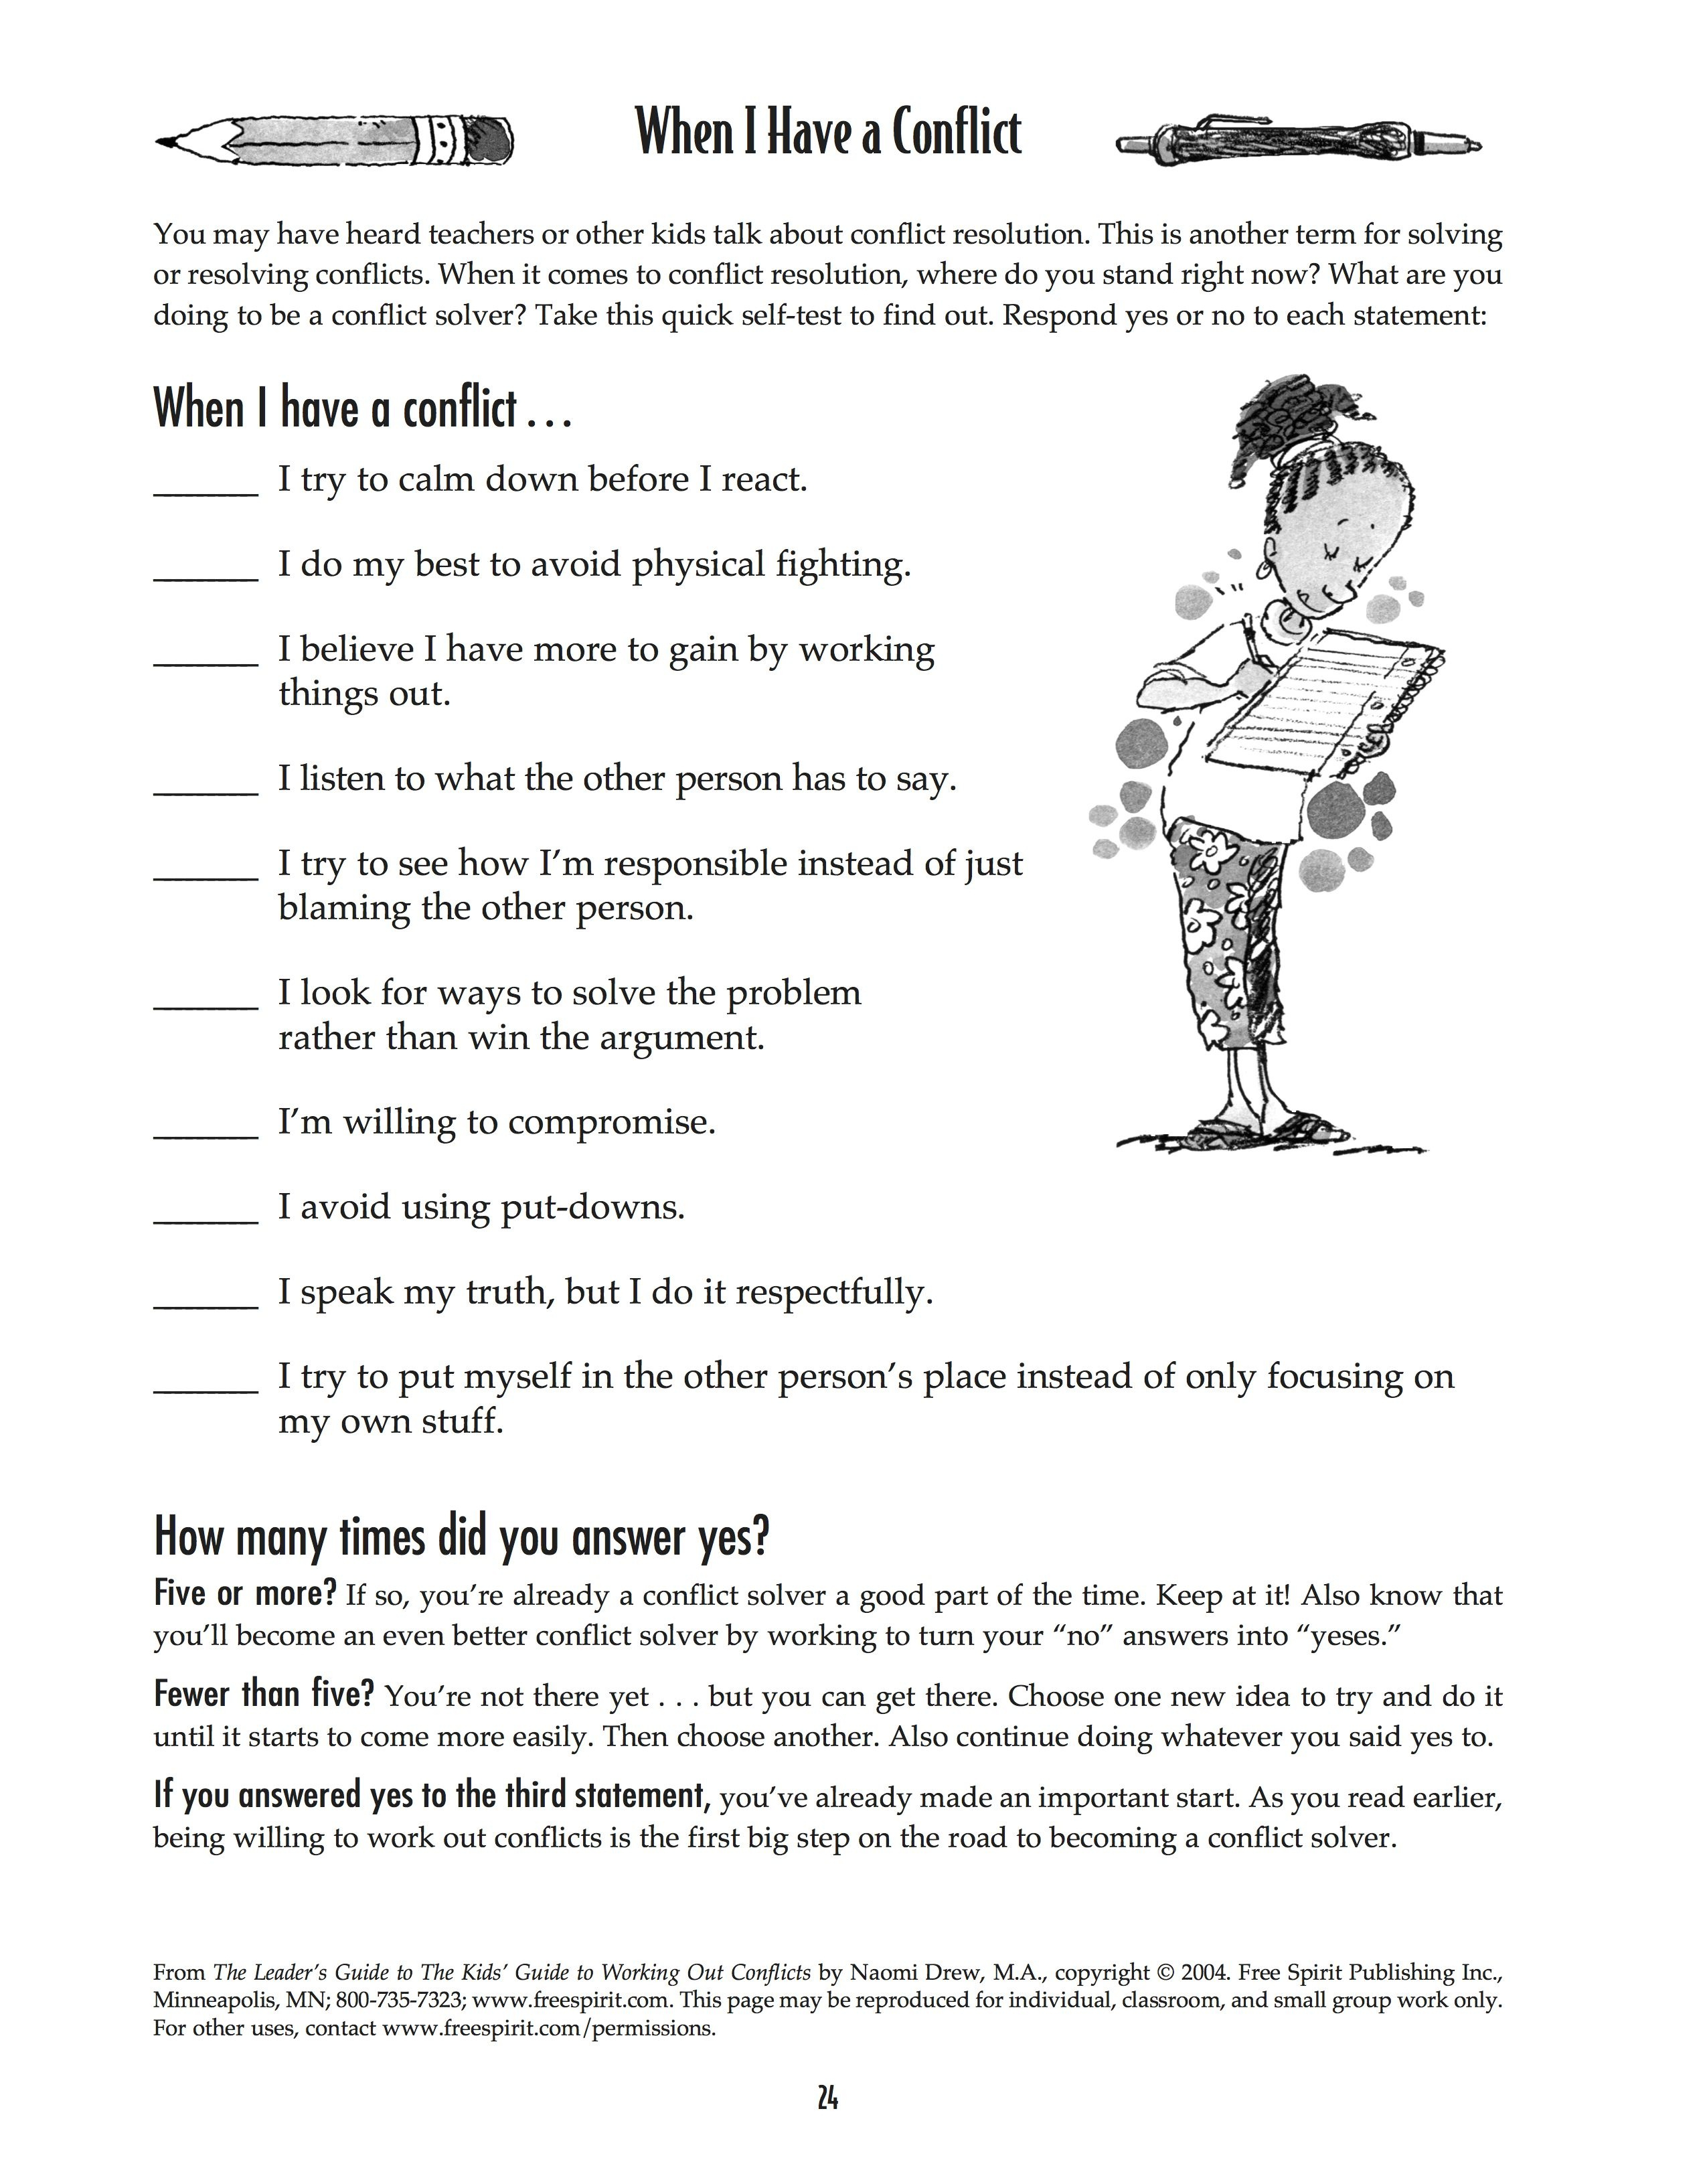 Free Printable Worksheet: When I Have A Conflict. A Quick Self-Test - Free Printable Counseling Worksheets